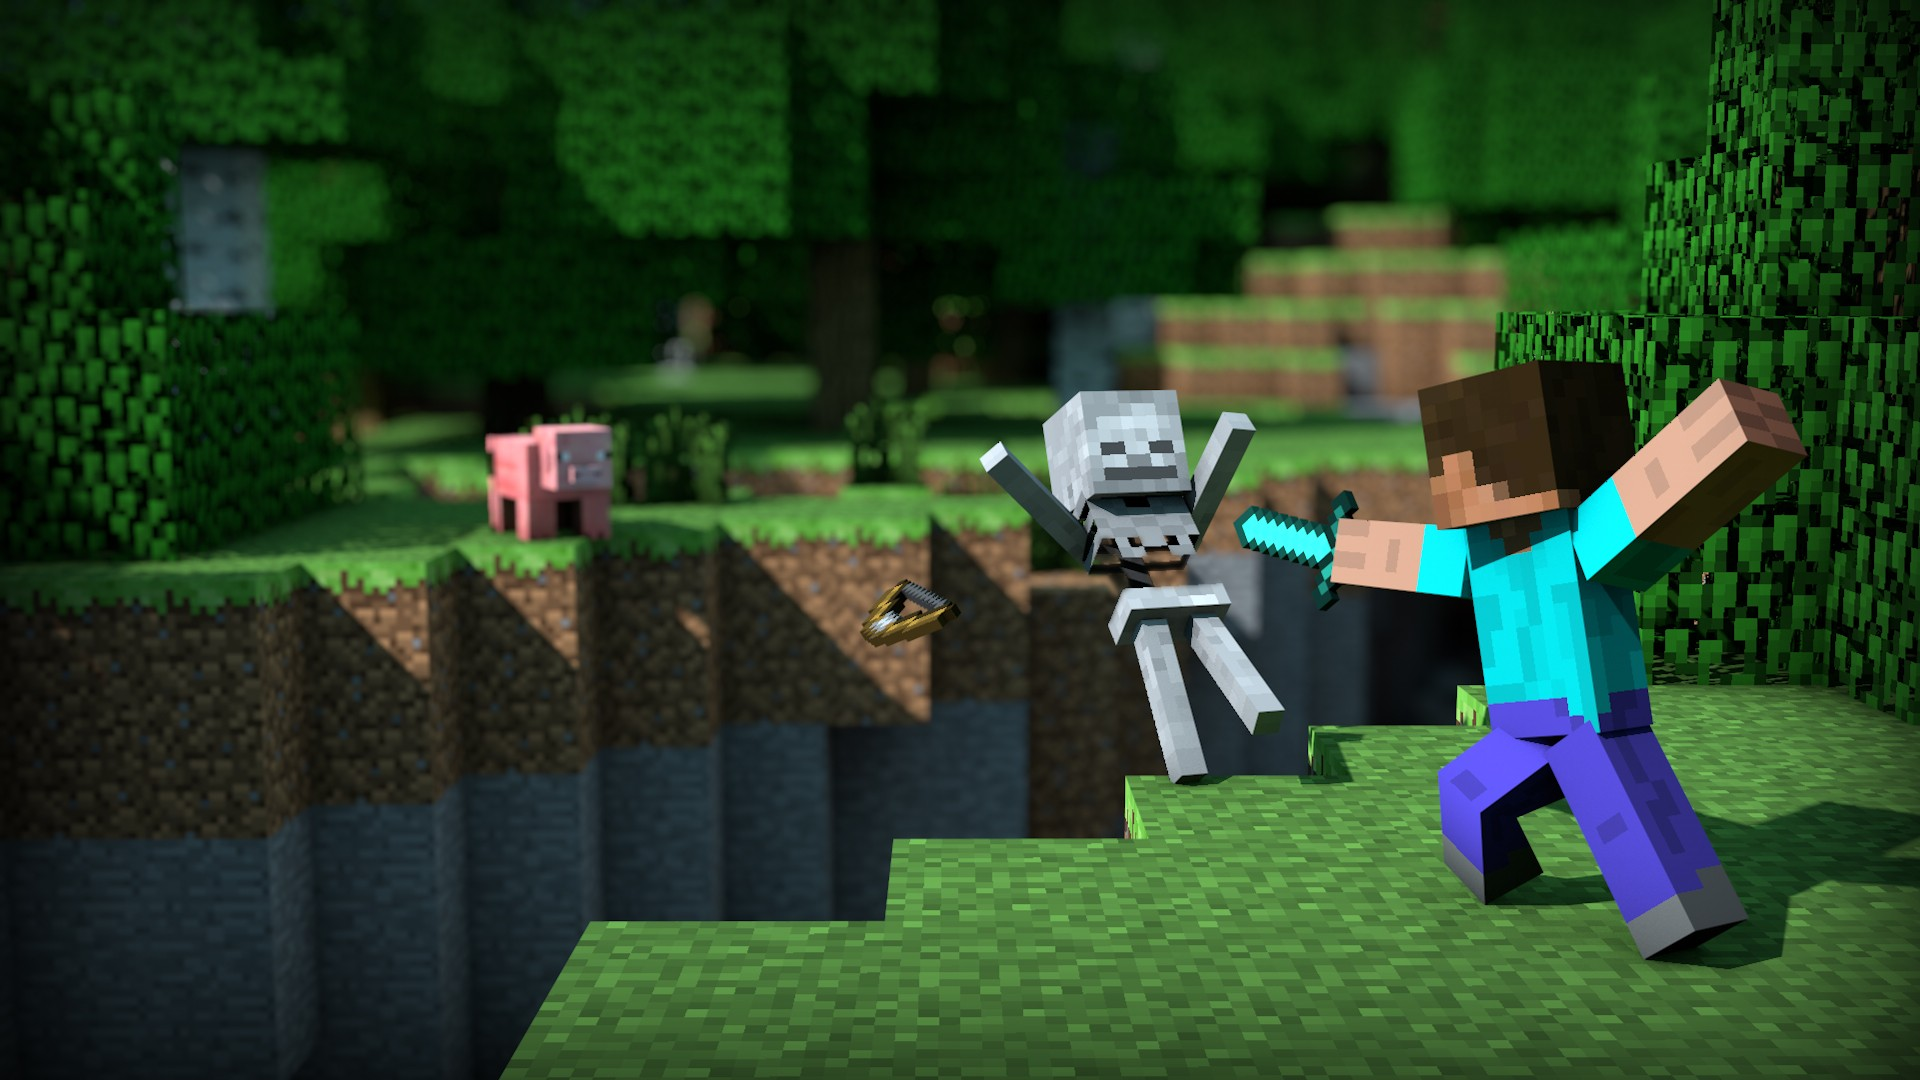 Minecraft - Passaggi Super Segreti